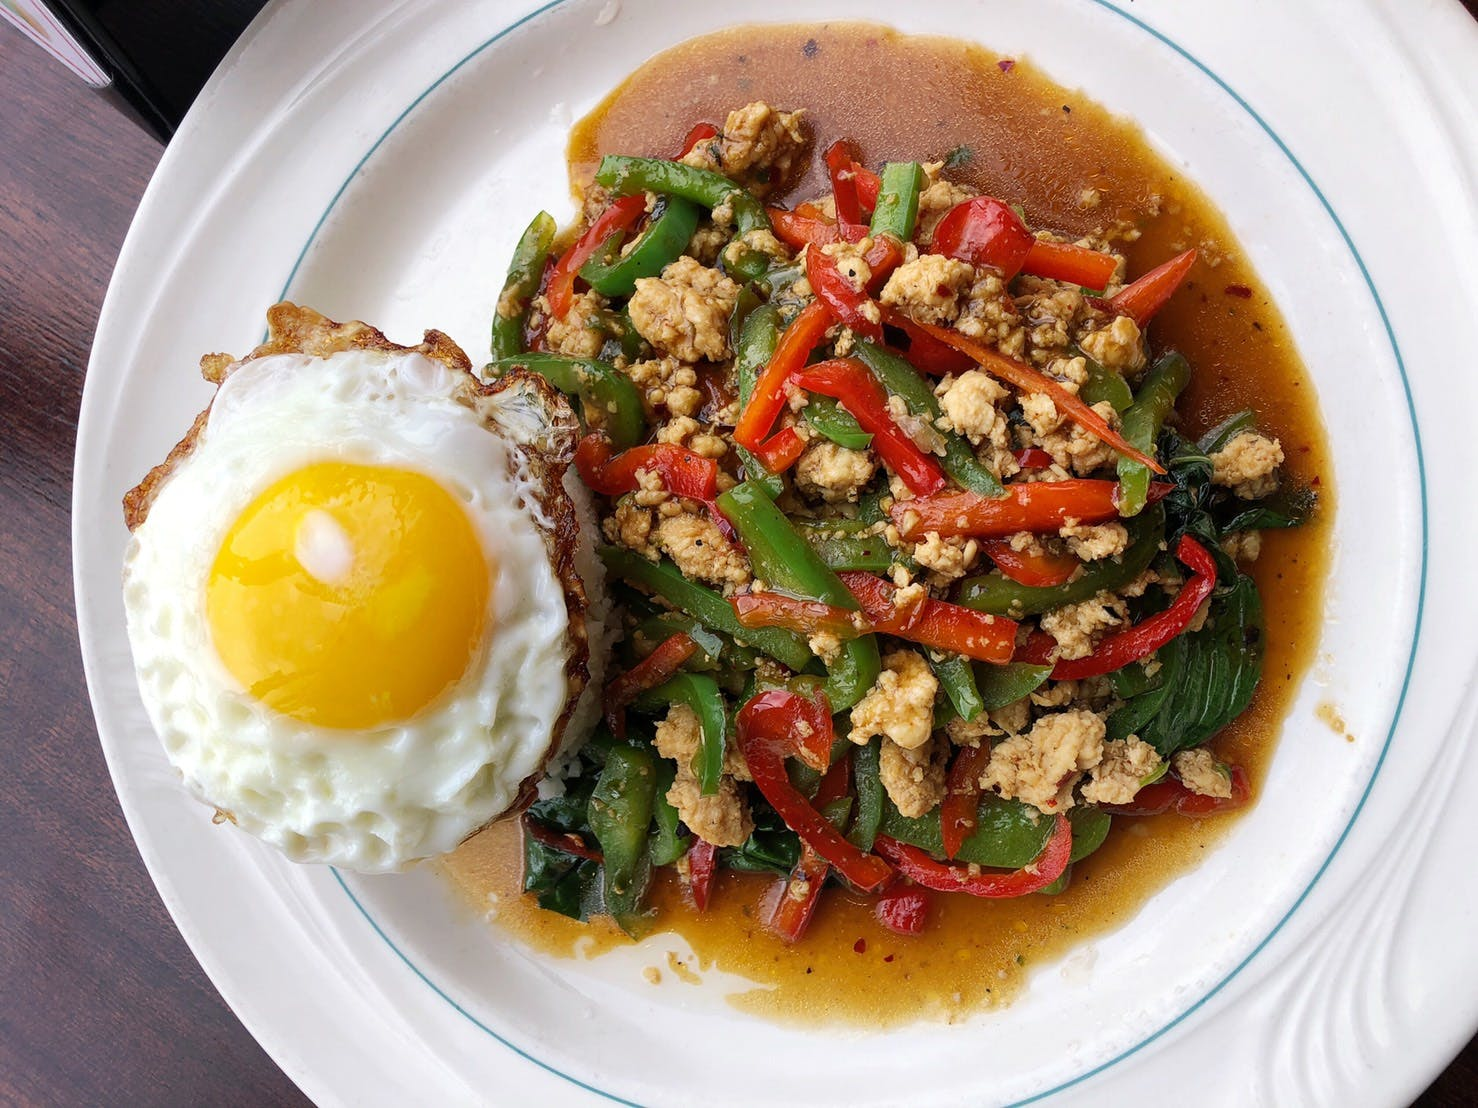 a white plate topped with meat, egg, and vegetables